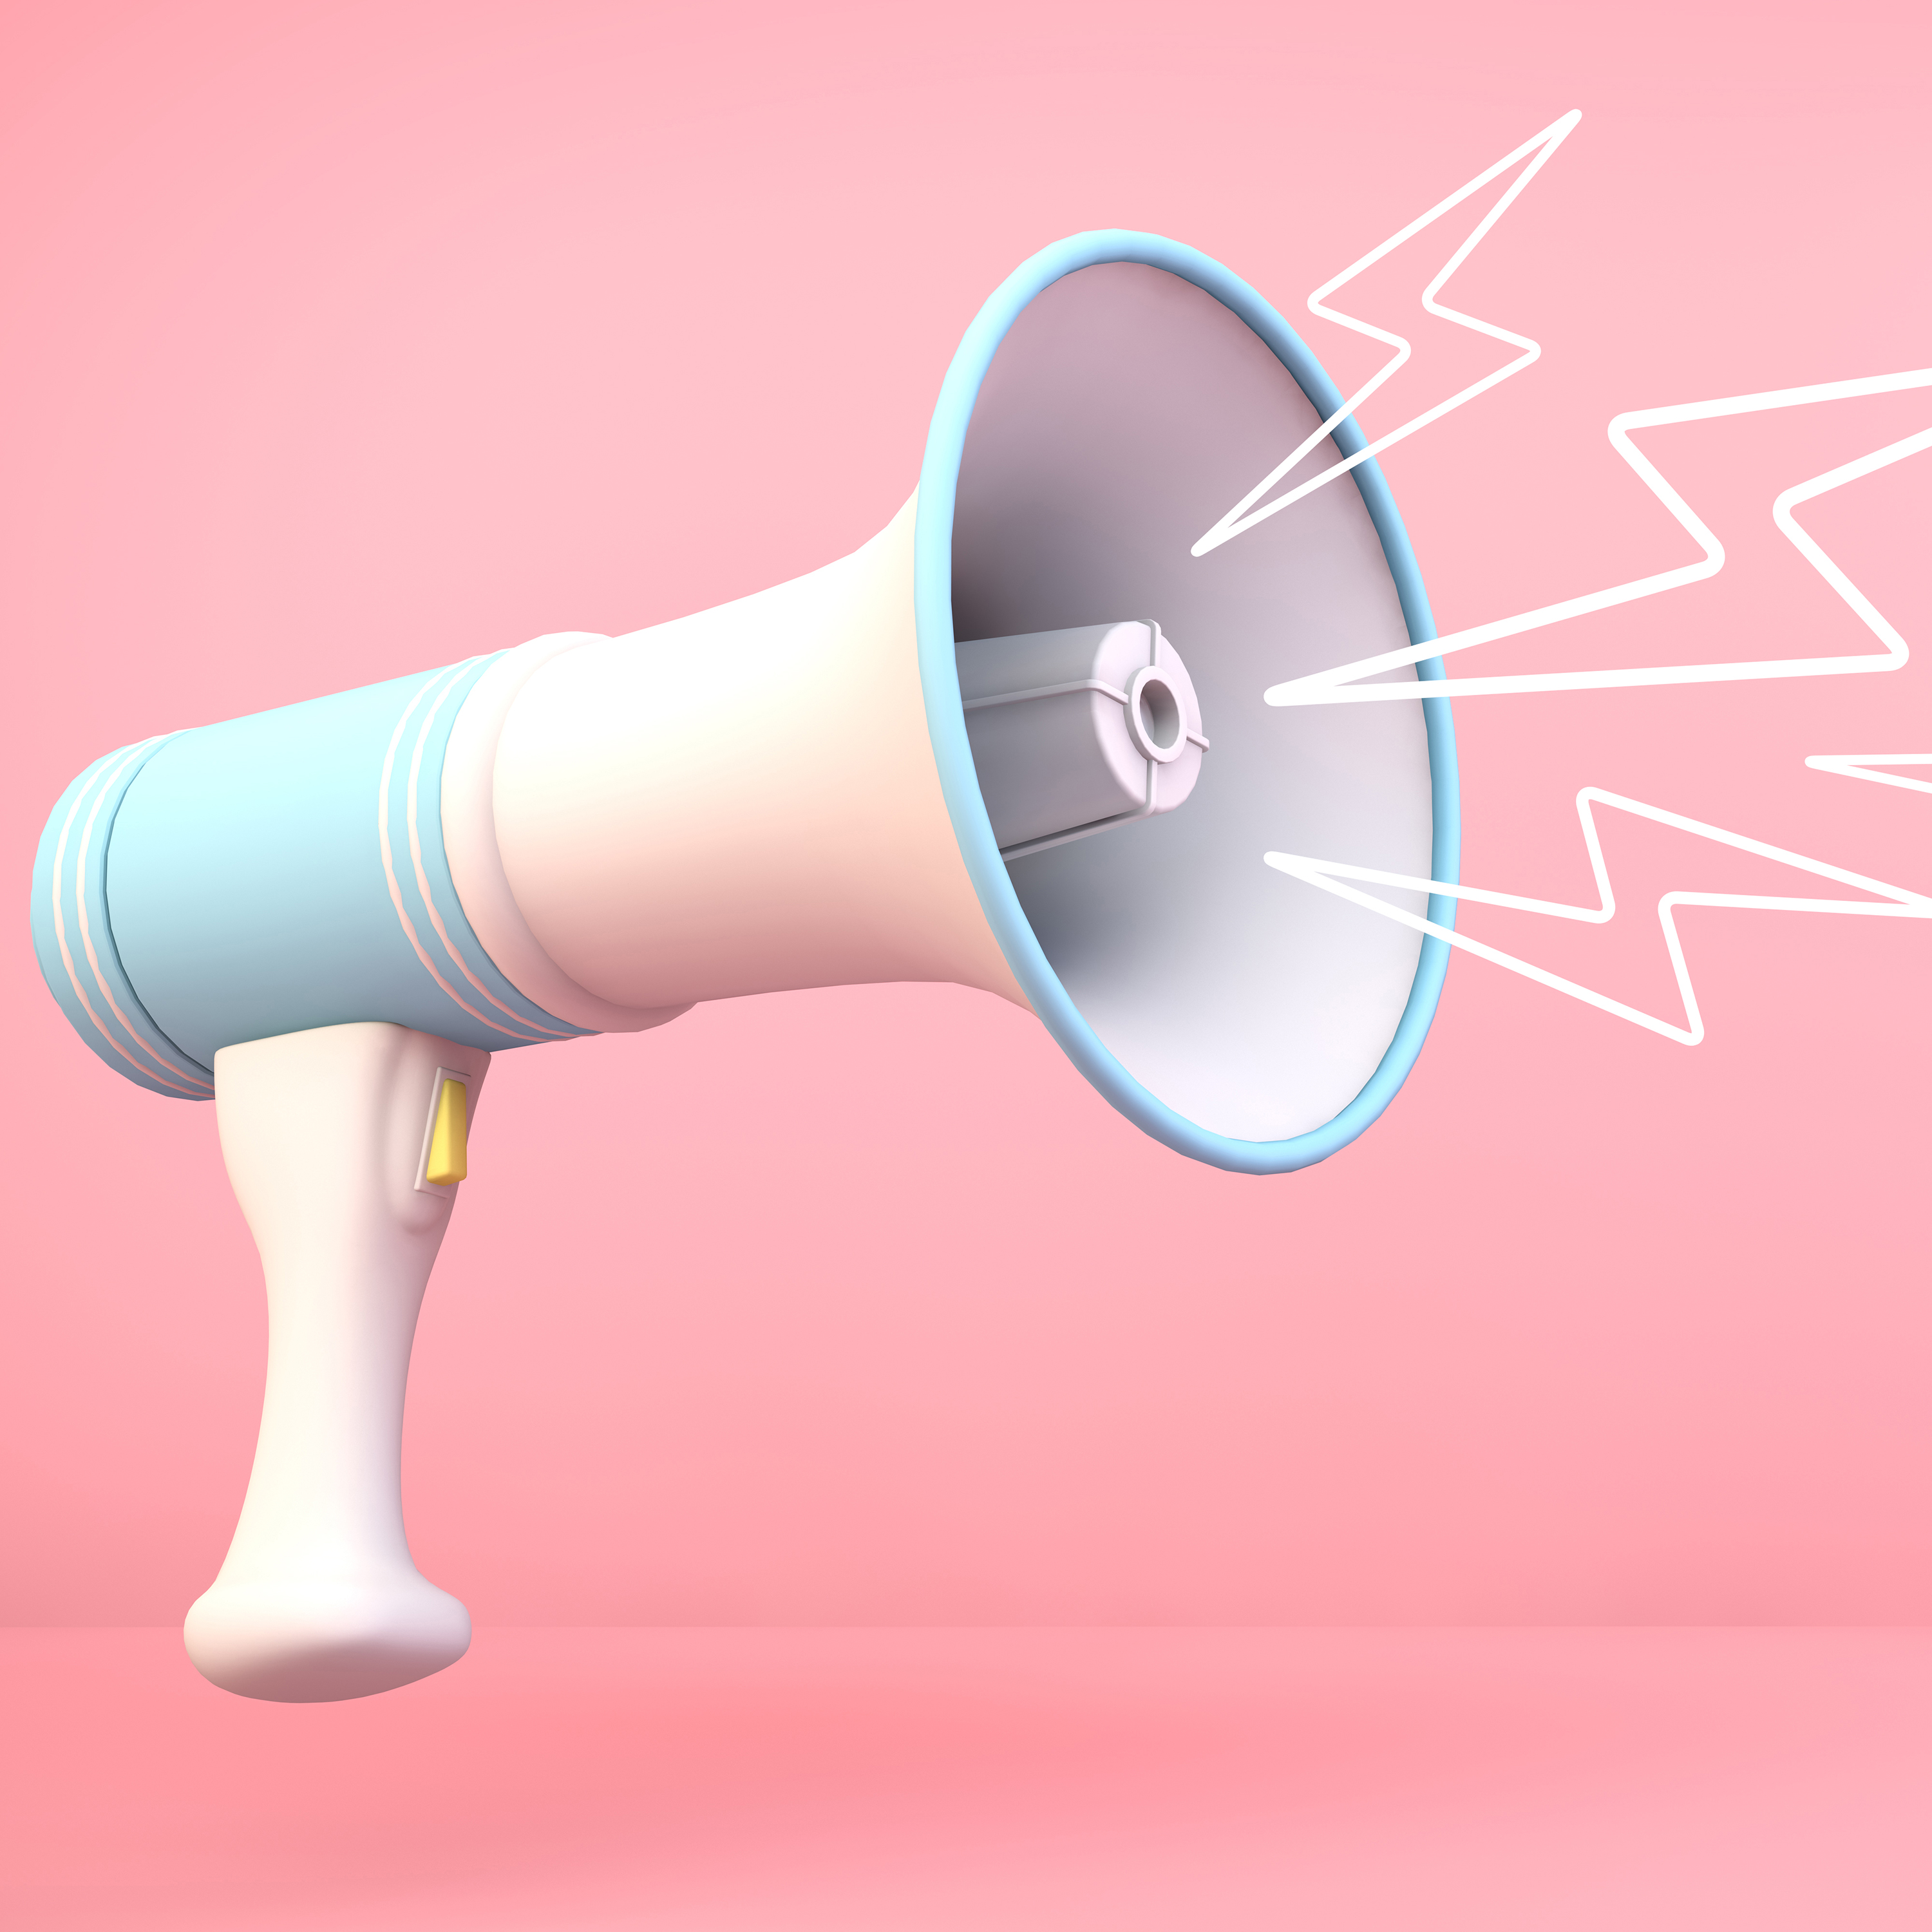 A megaphone with illustrations to represent sound coming out of it.